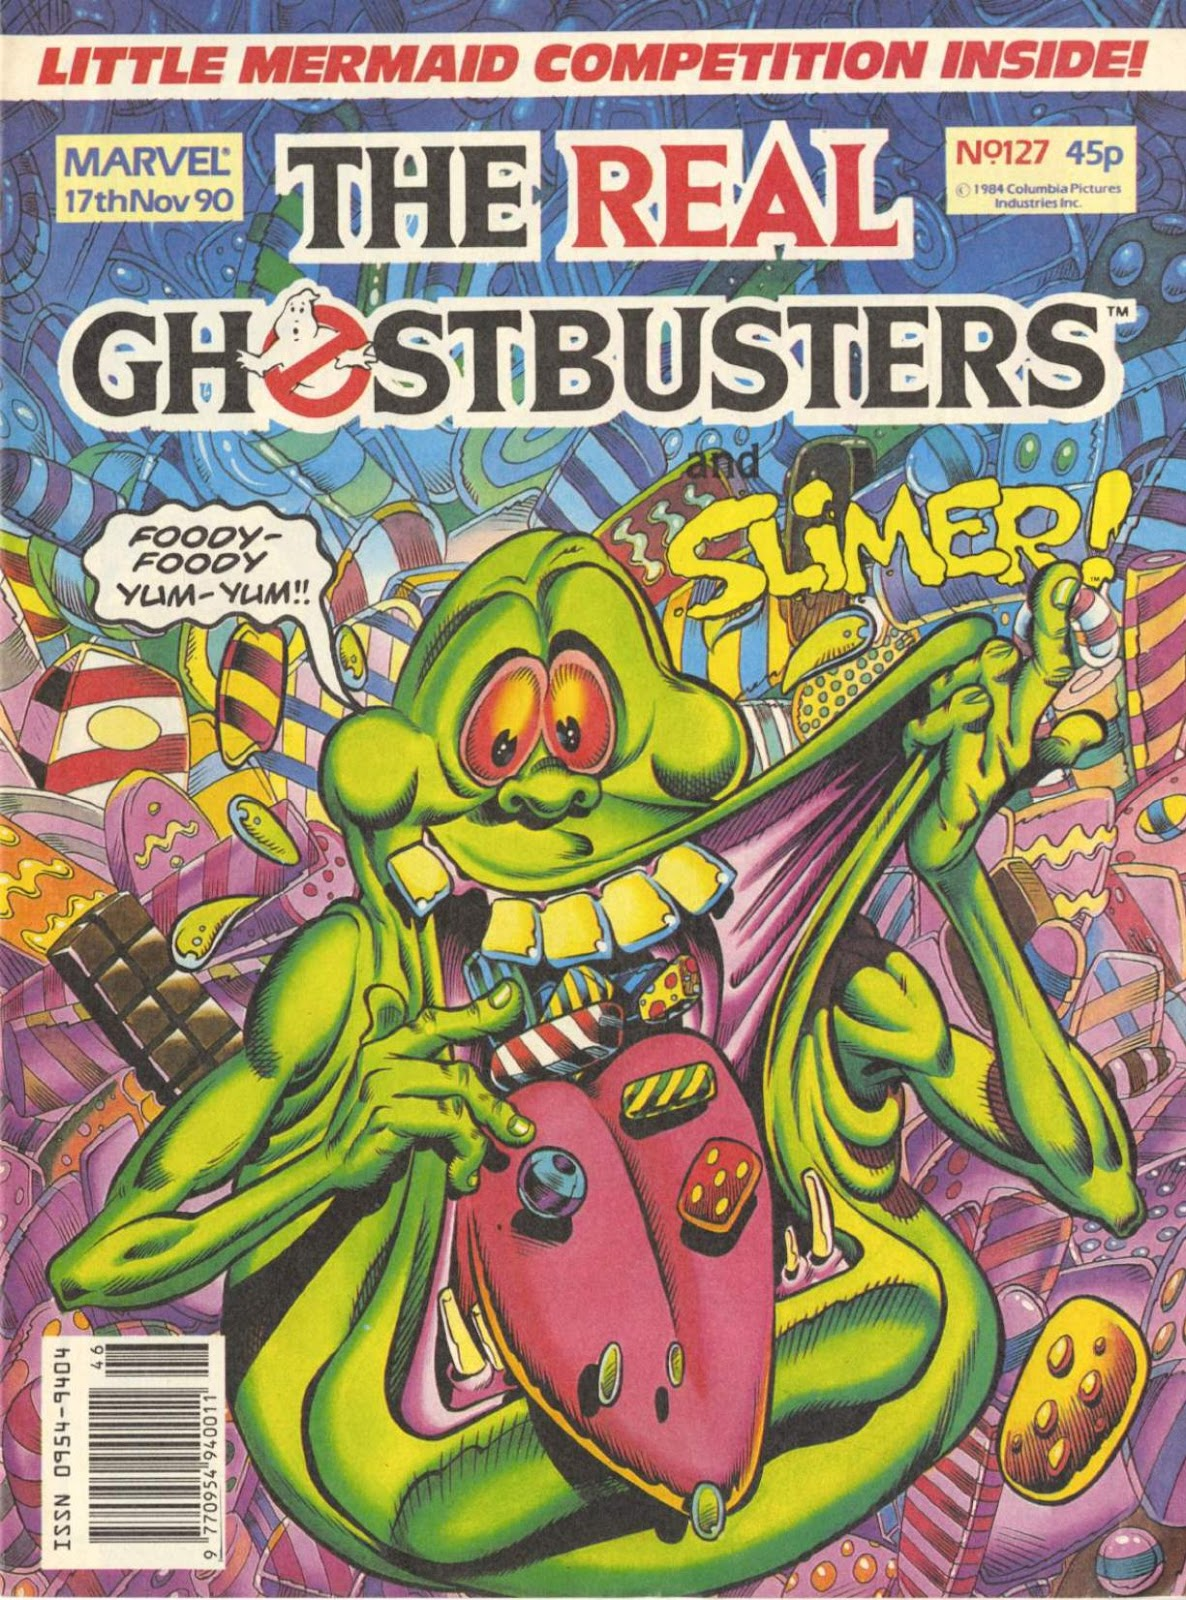 The Real Ghostbusters 127 Page 1